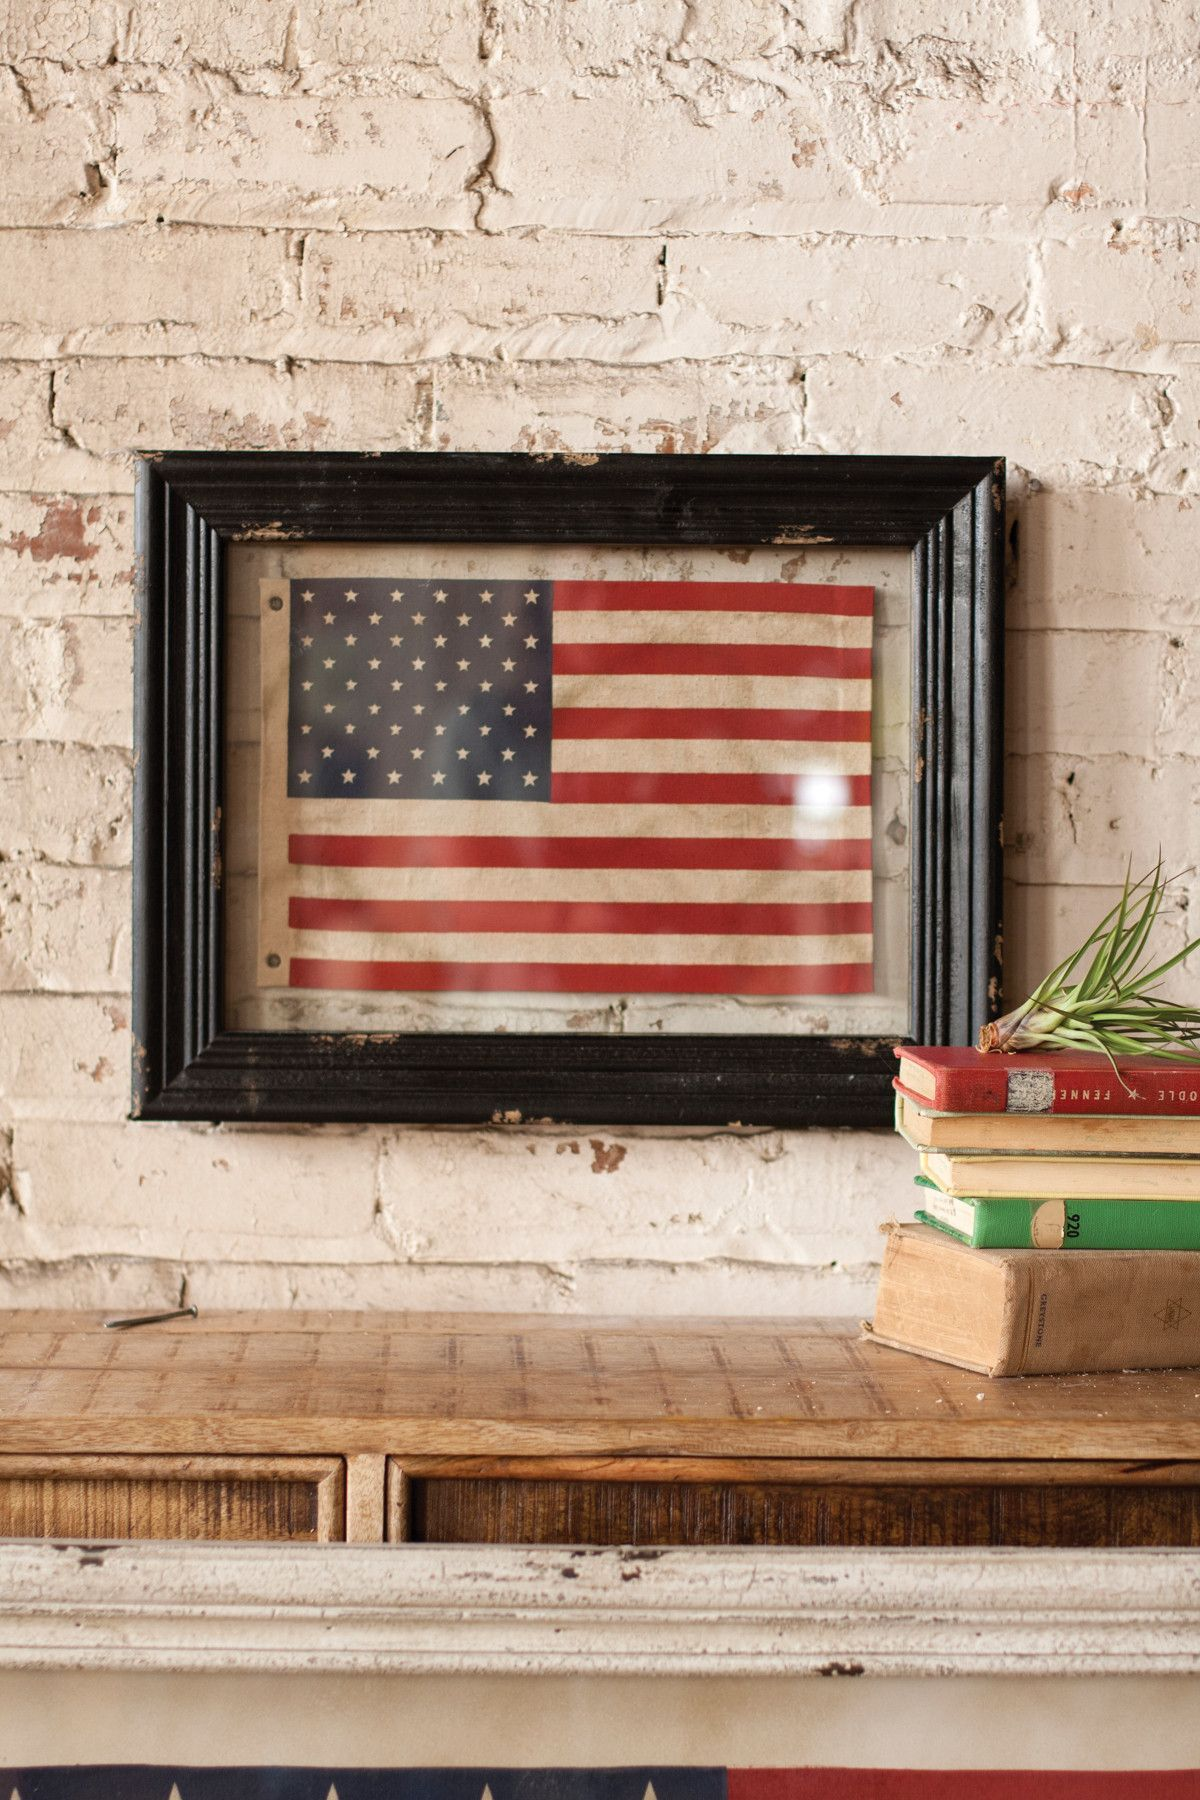 Small Framed American Flag Under Glass Framed American Flag Decor Small American Flags